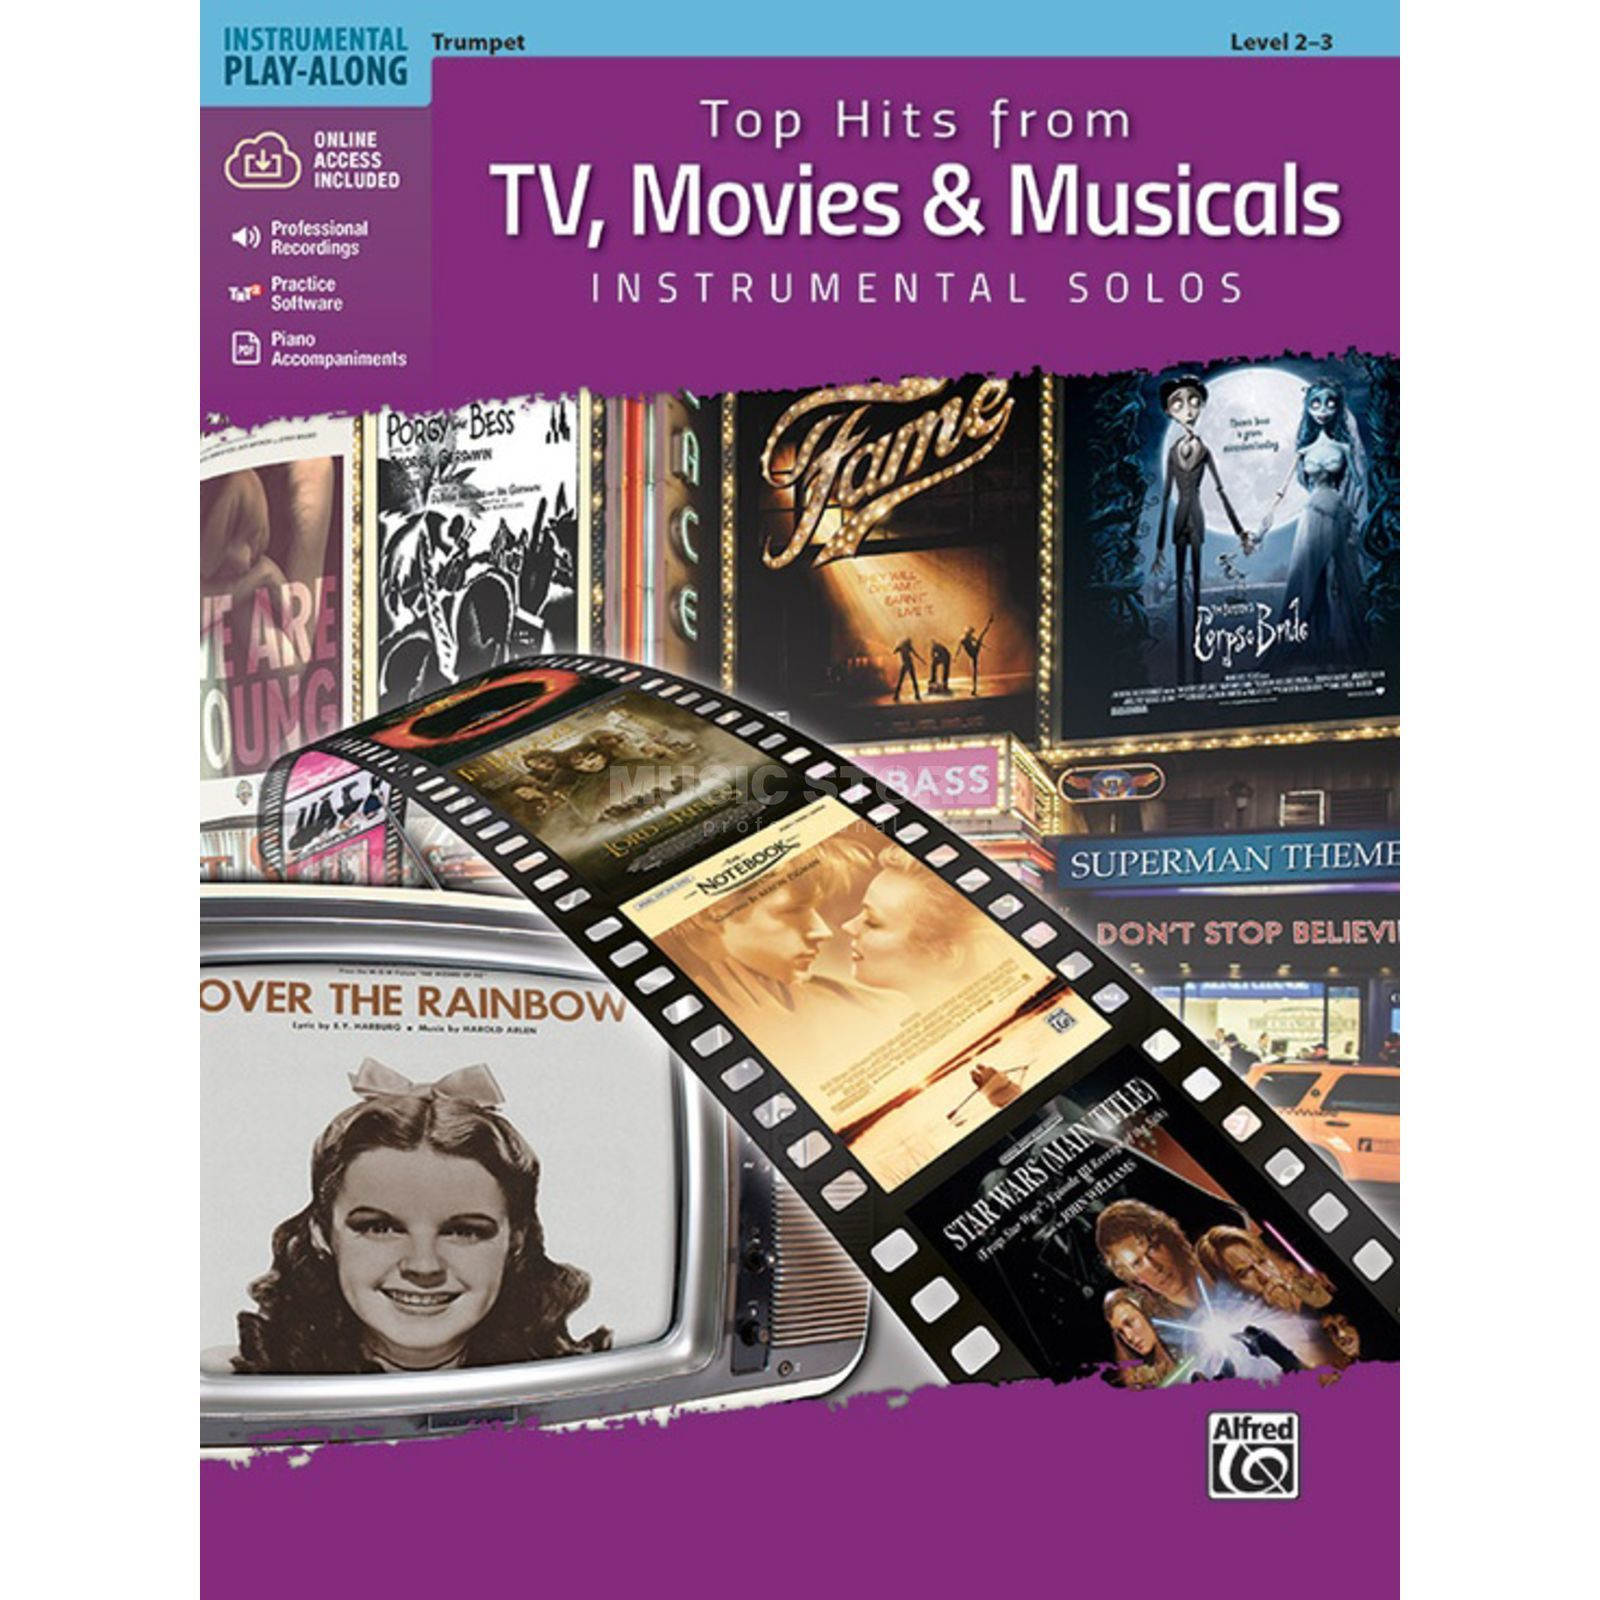 Alfred Music Top Hits from TV, Movies & Musicals – Trumpet Product Image